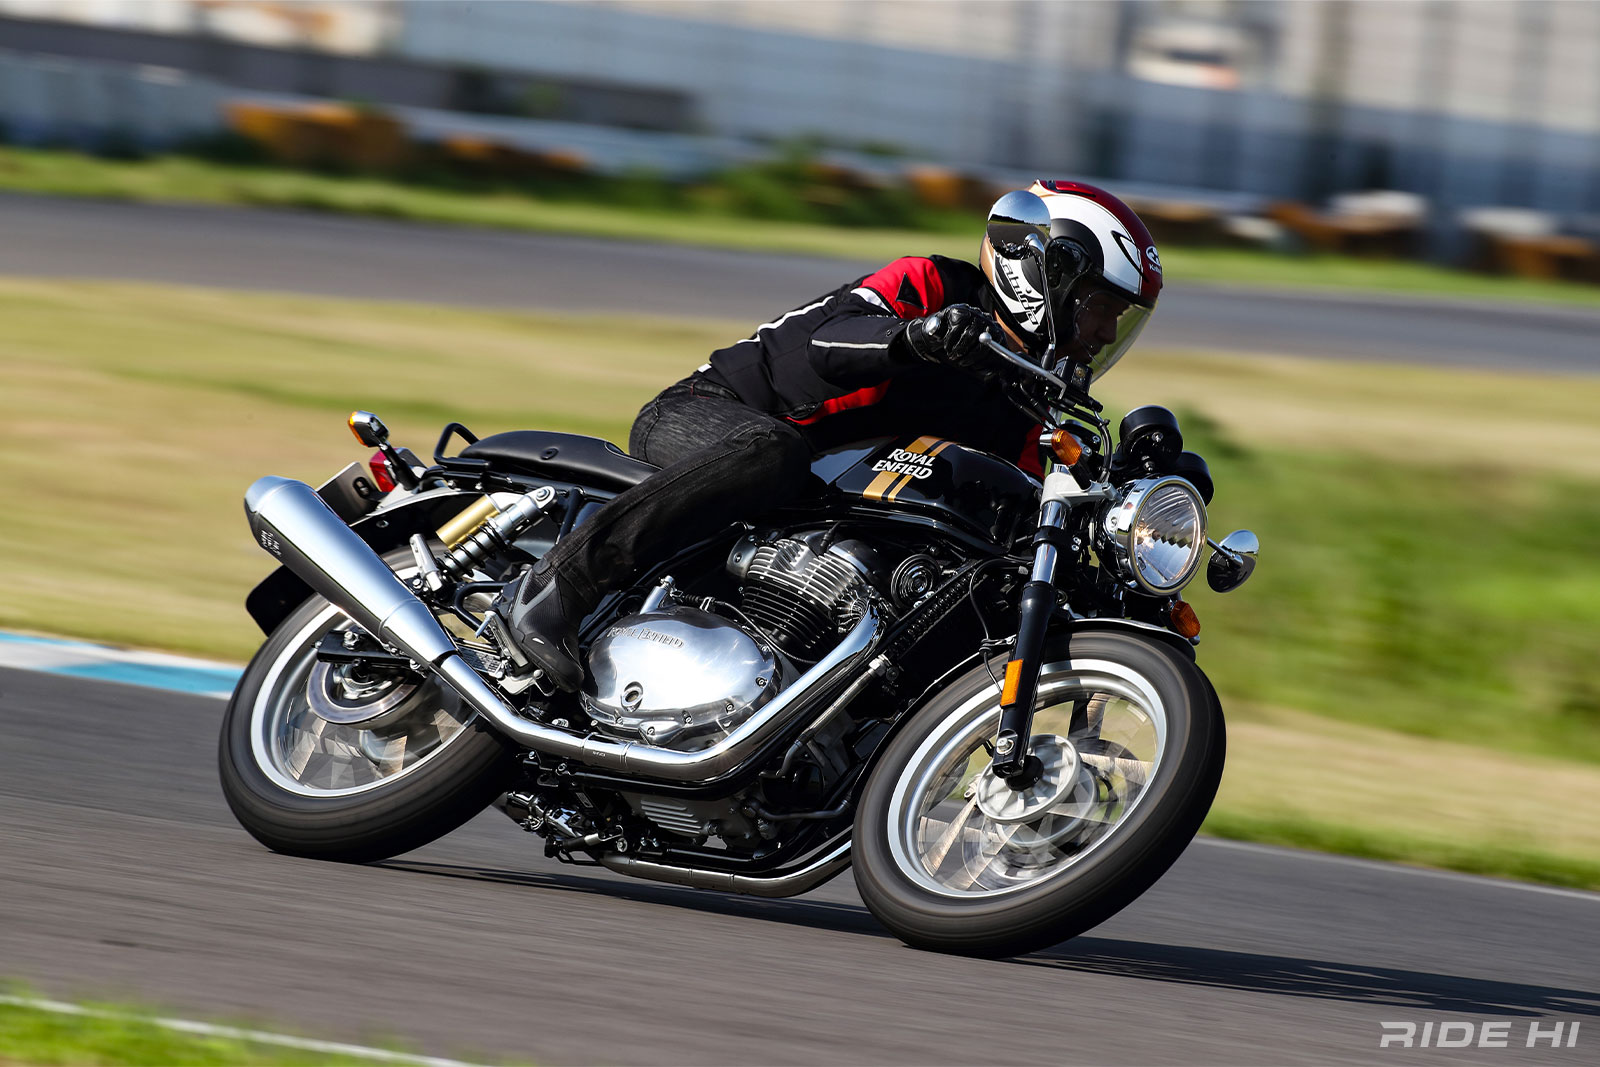 royalenfield_int650-gt650_201228_04.jpg